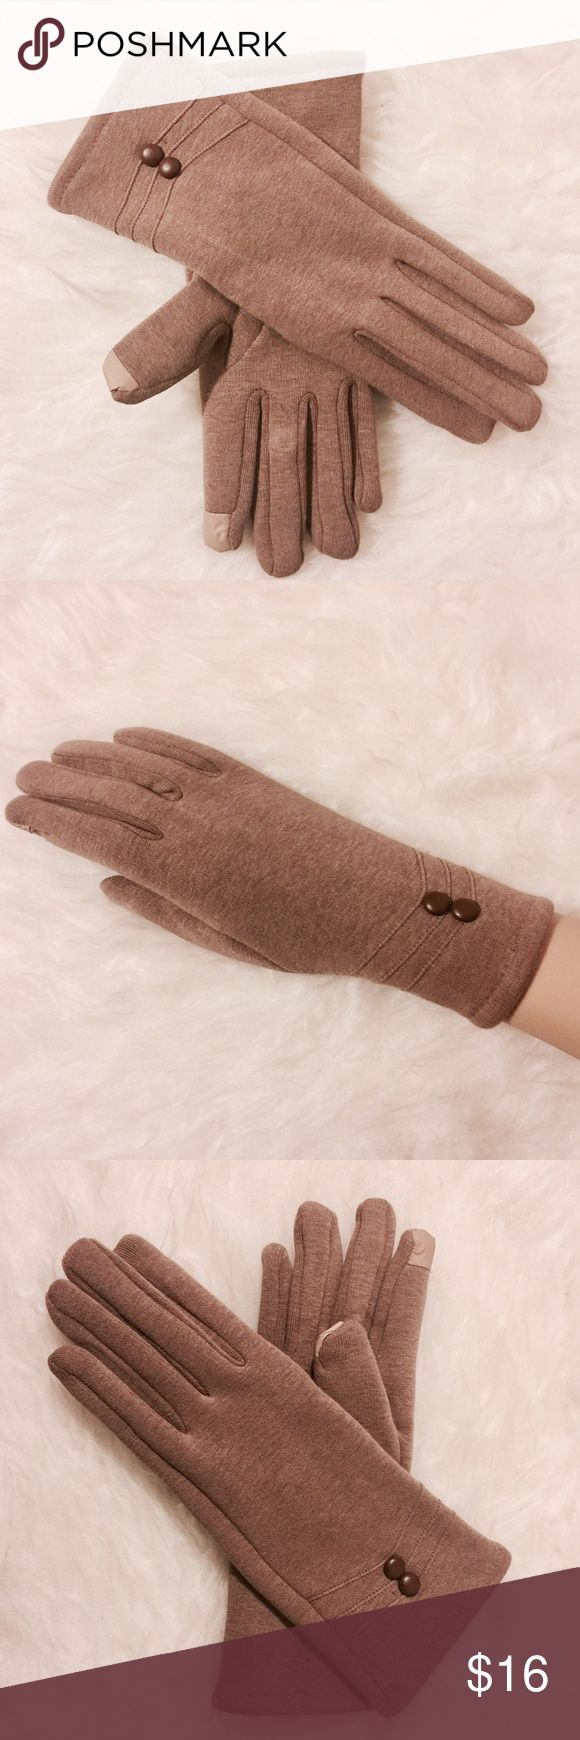 ⭐️ Camel Button Accent Touch Screen Gloves Pretty and practical! Fleece lined touch screen gloves. 100% Acrylic. Machine washable Accessories Gloves & Mittens